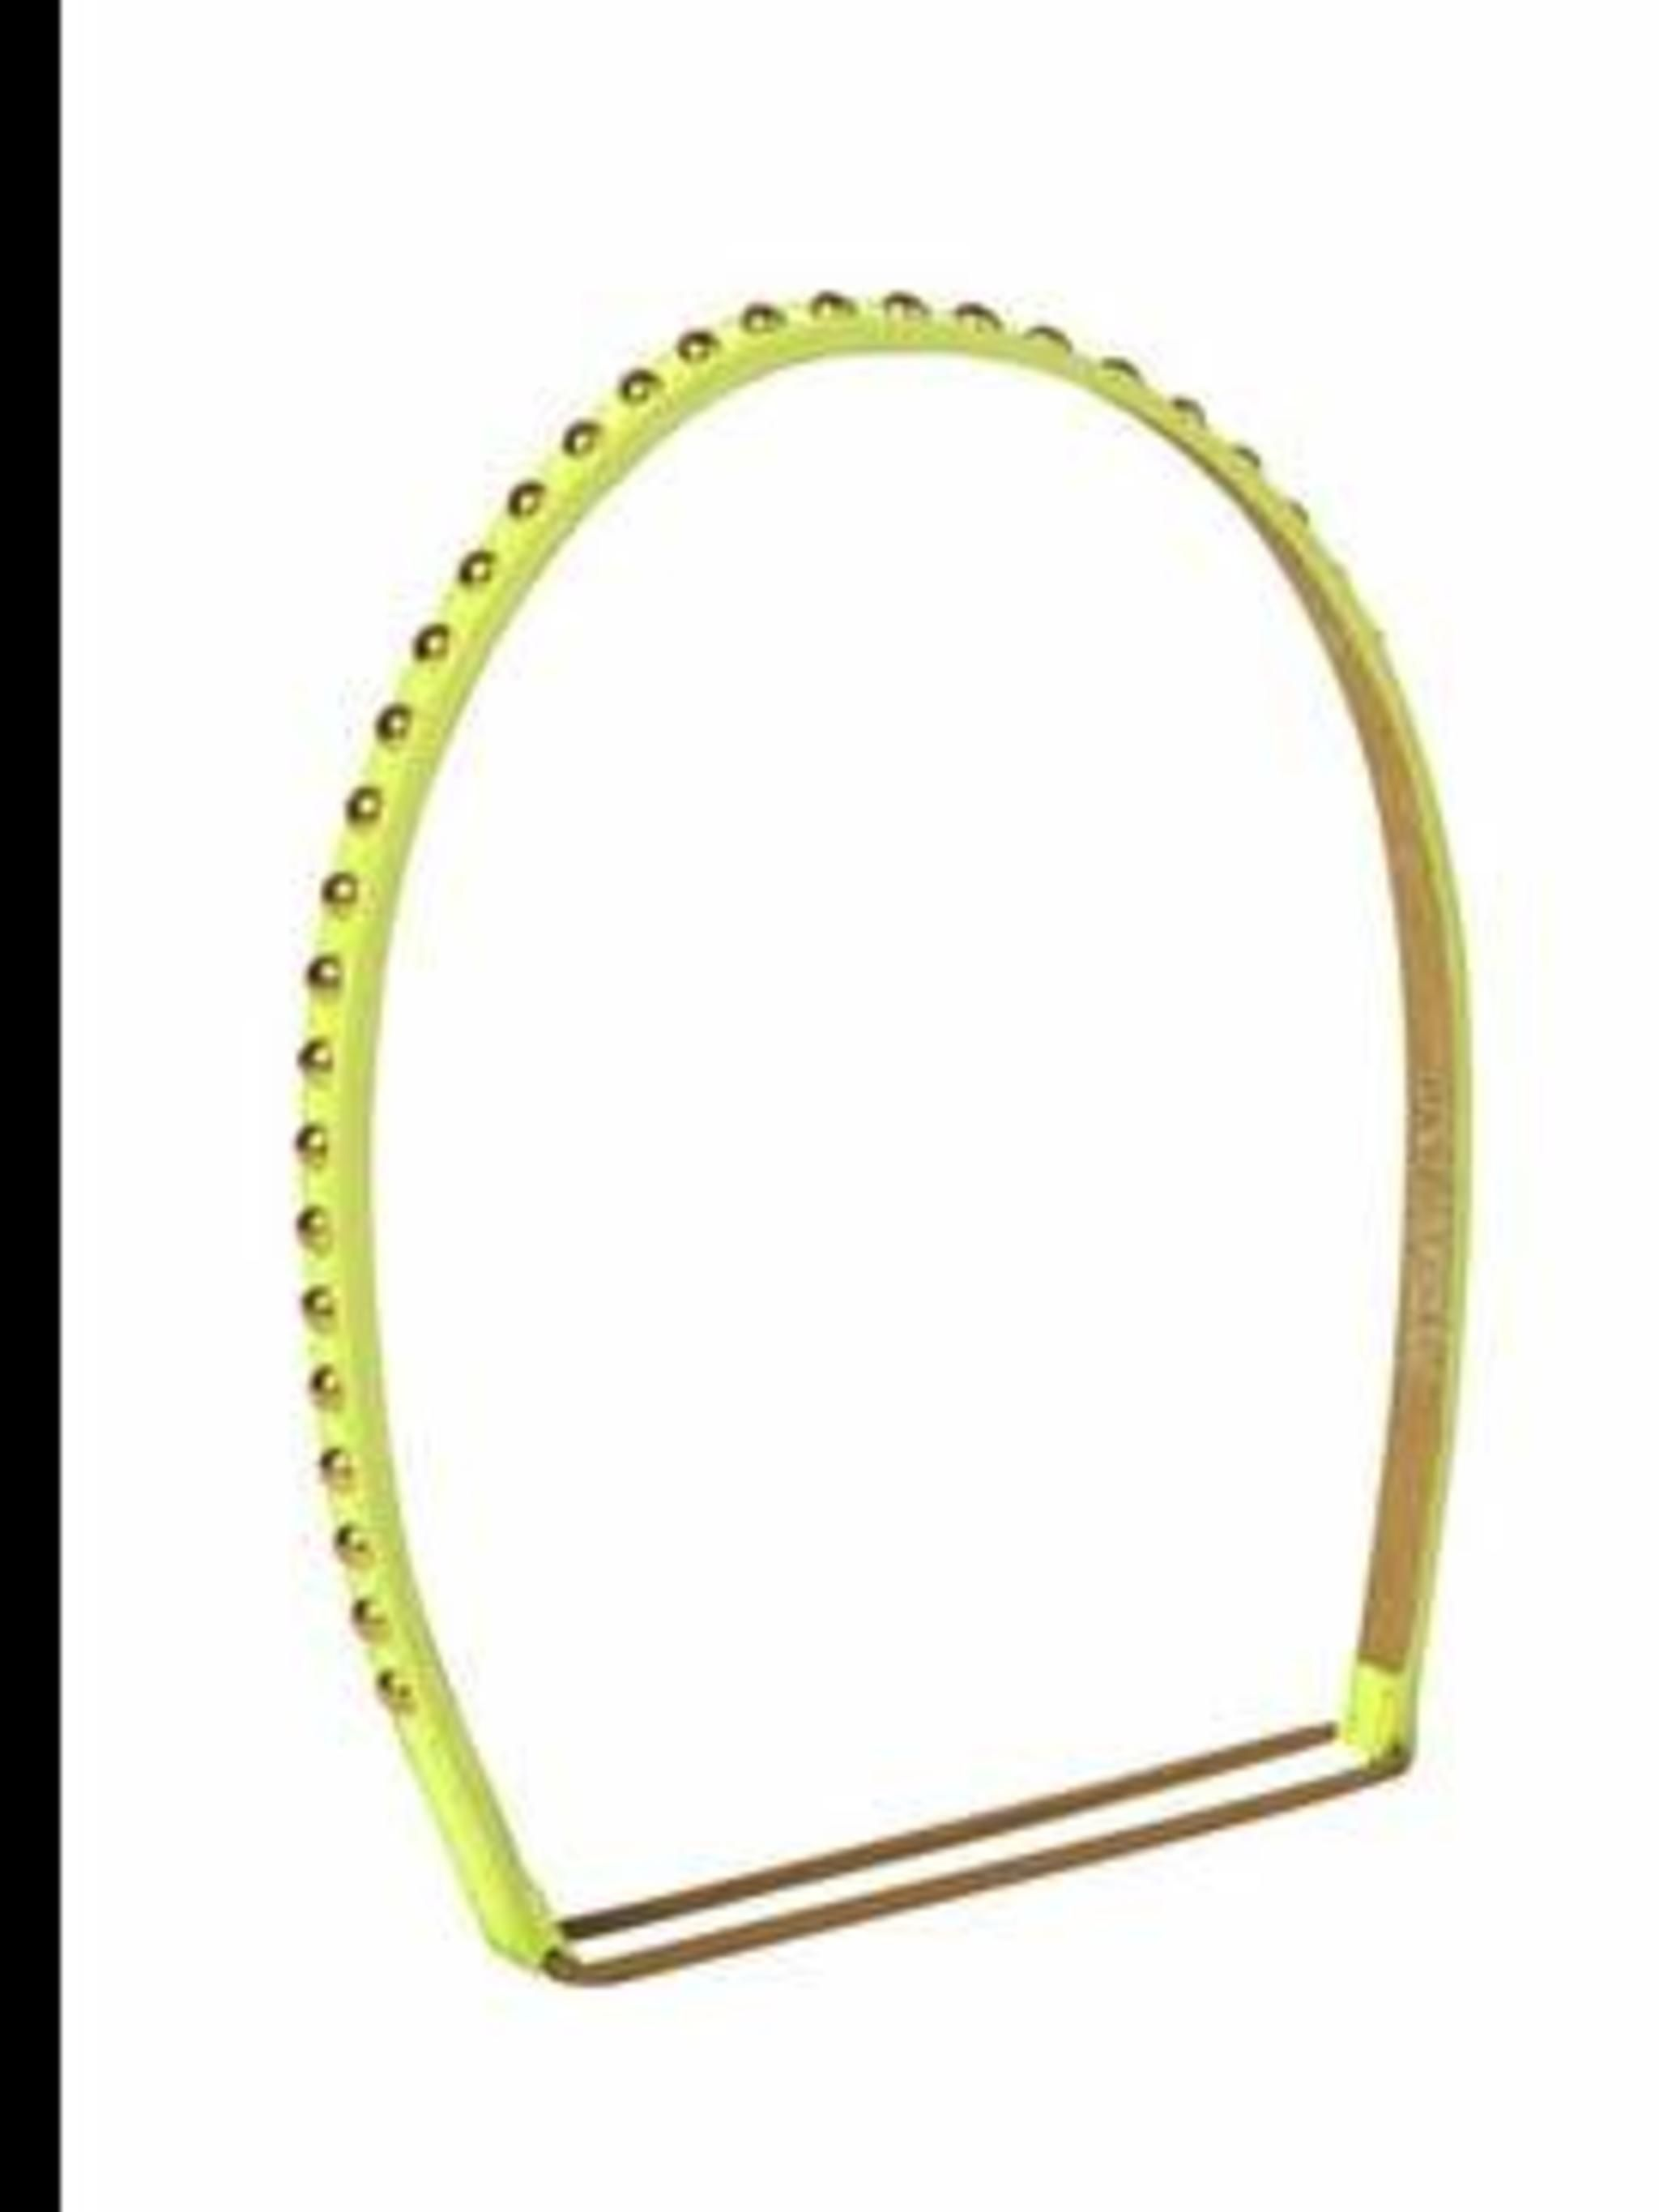 "<p>Headband, £115 by Jennifer Behr at <a href=""http://www.liberty.co.uk/fcp/product/Liberty/Accessories/Patent-Green-Studded-Headband,--Jennifer-Behr/11565"">Liberty</a></p>"